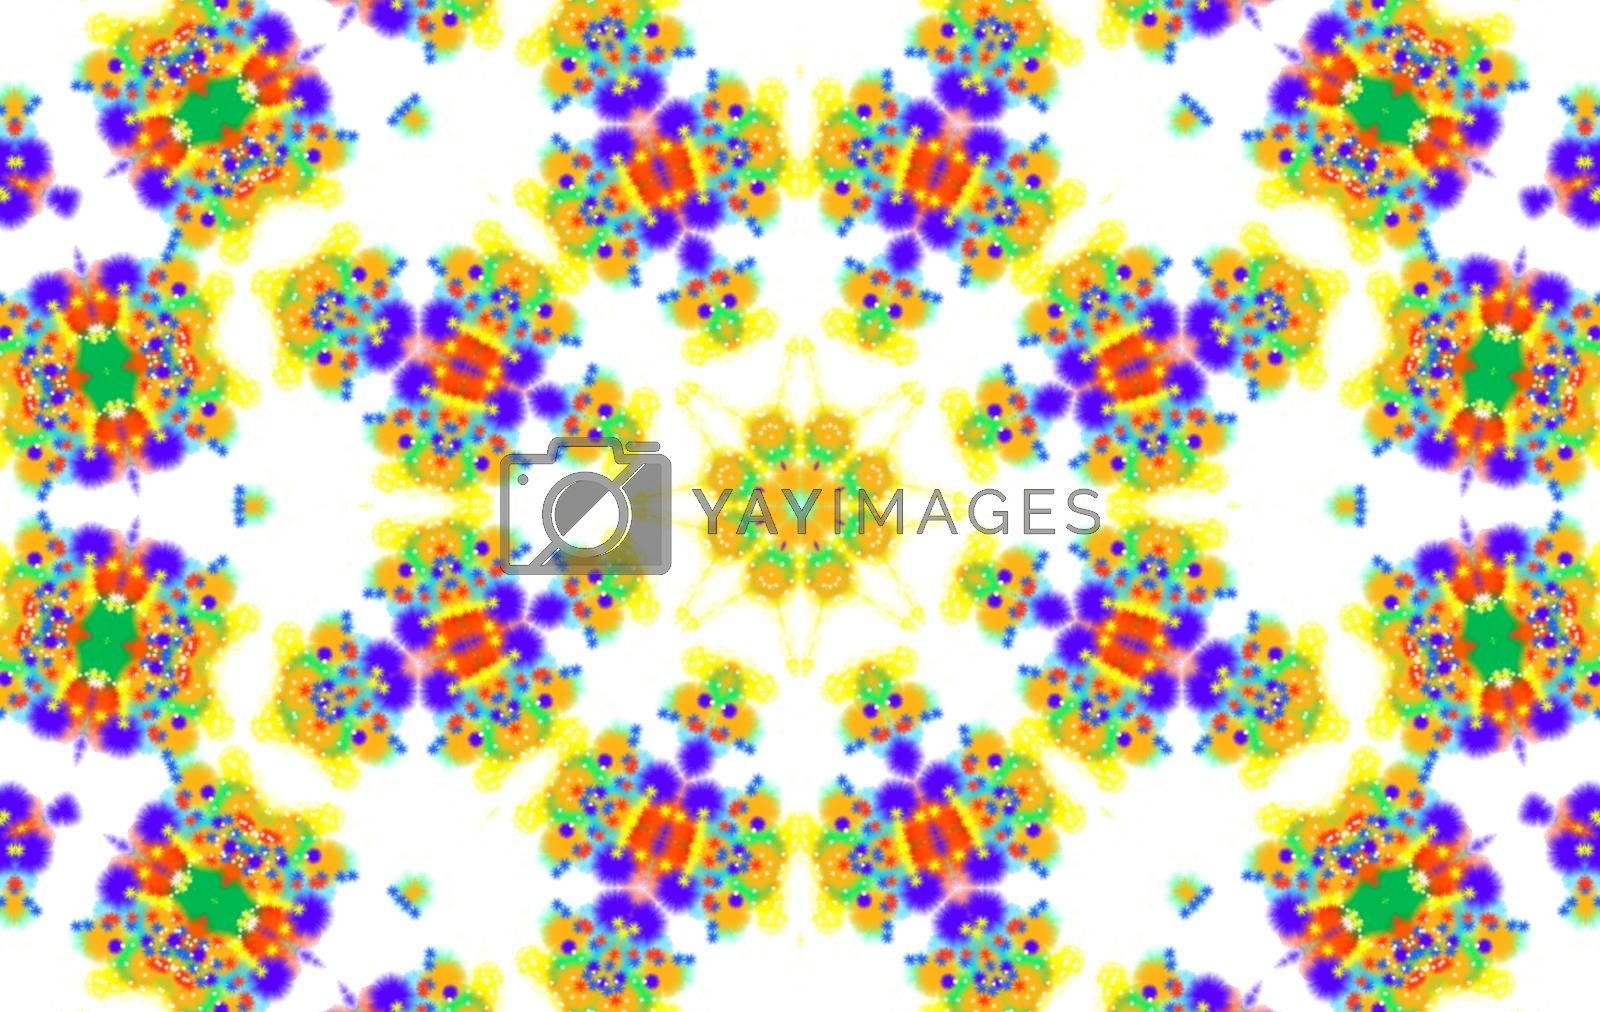 Background with abstract colorful concentric pattern